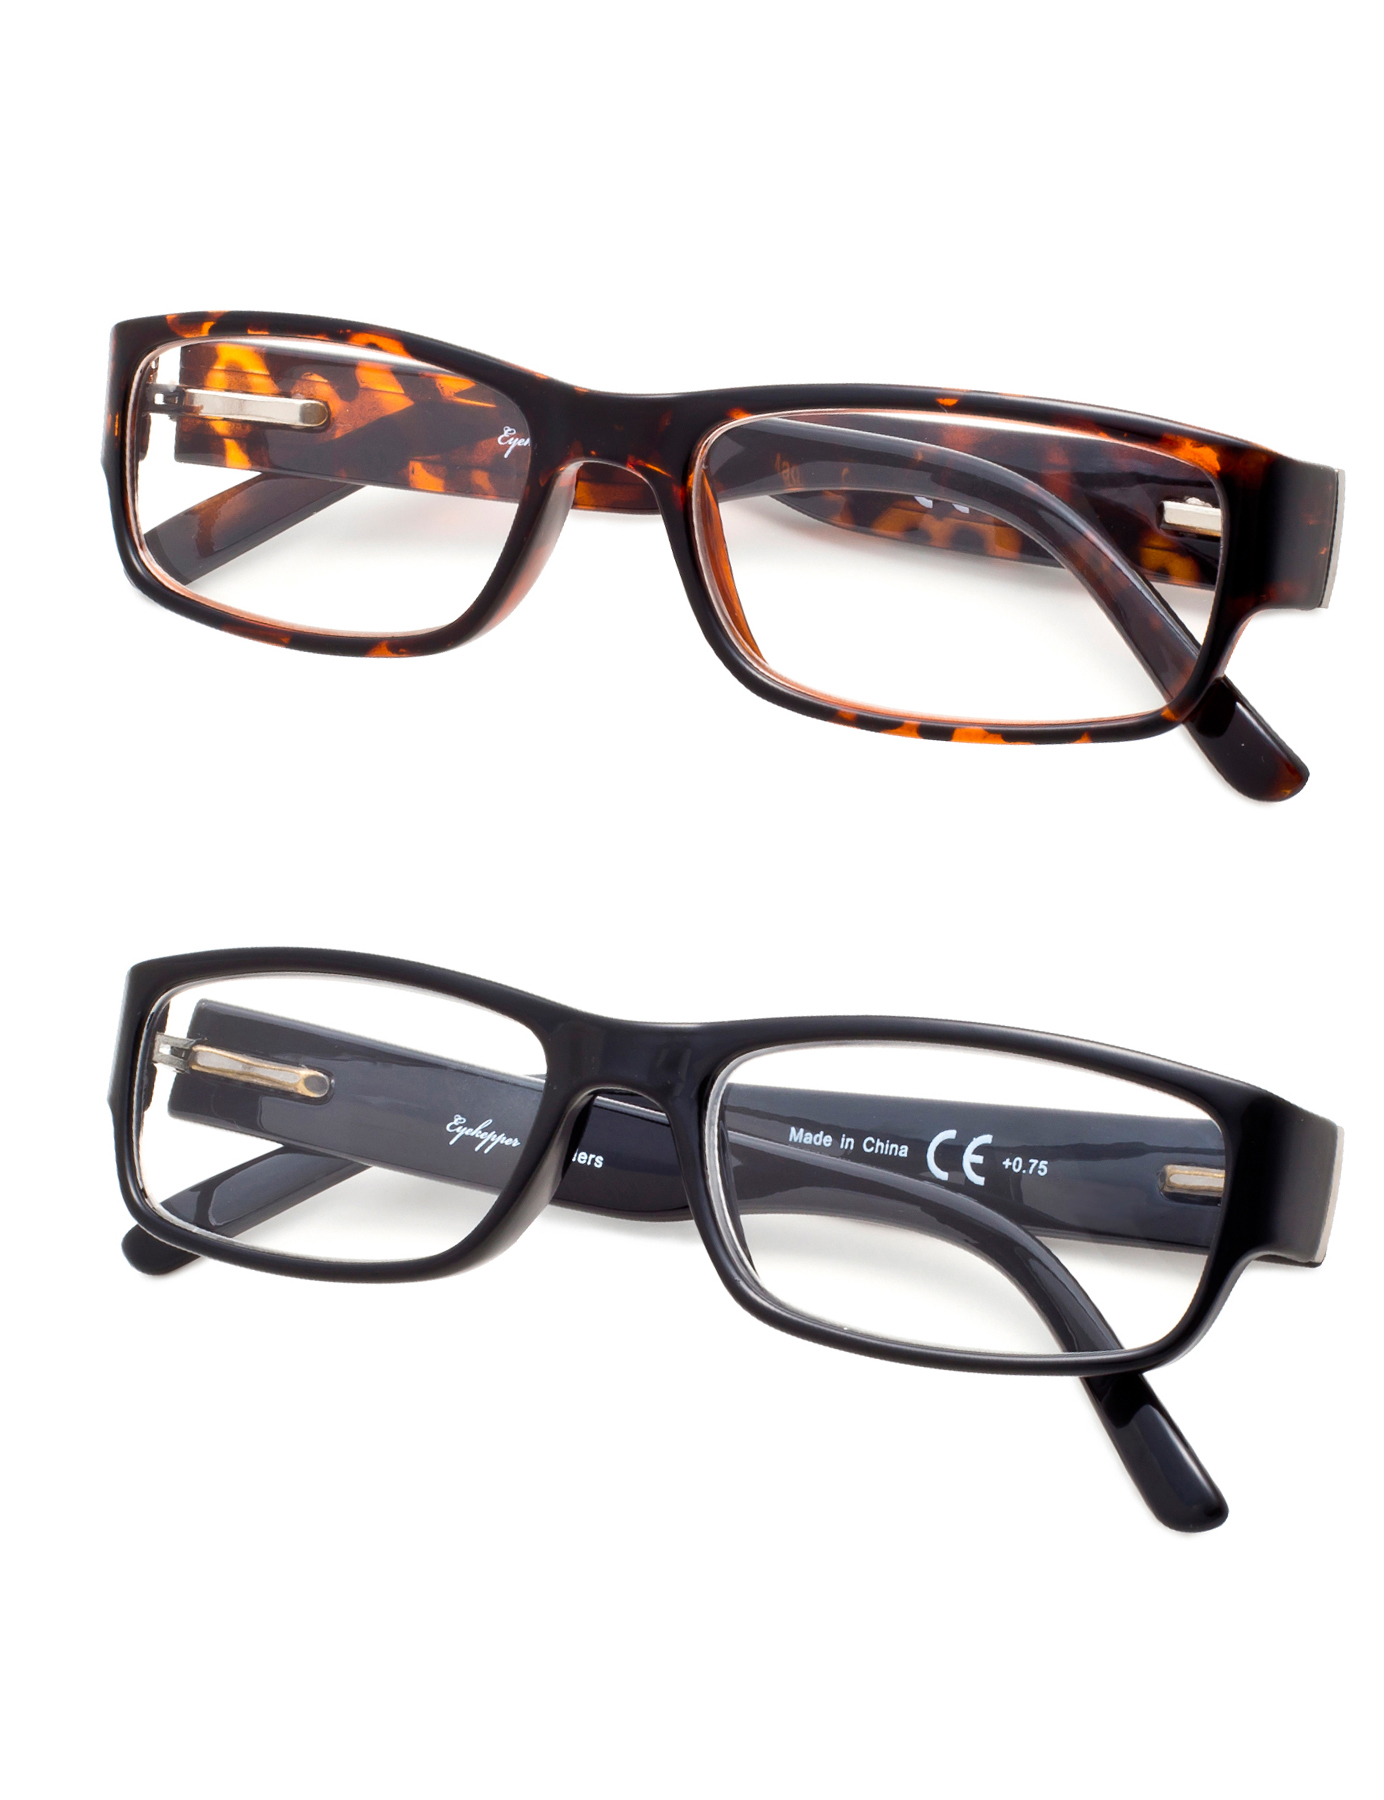 Eyekepper Reading Glasses 2-pack Classic Full Frame Design with ...